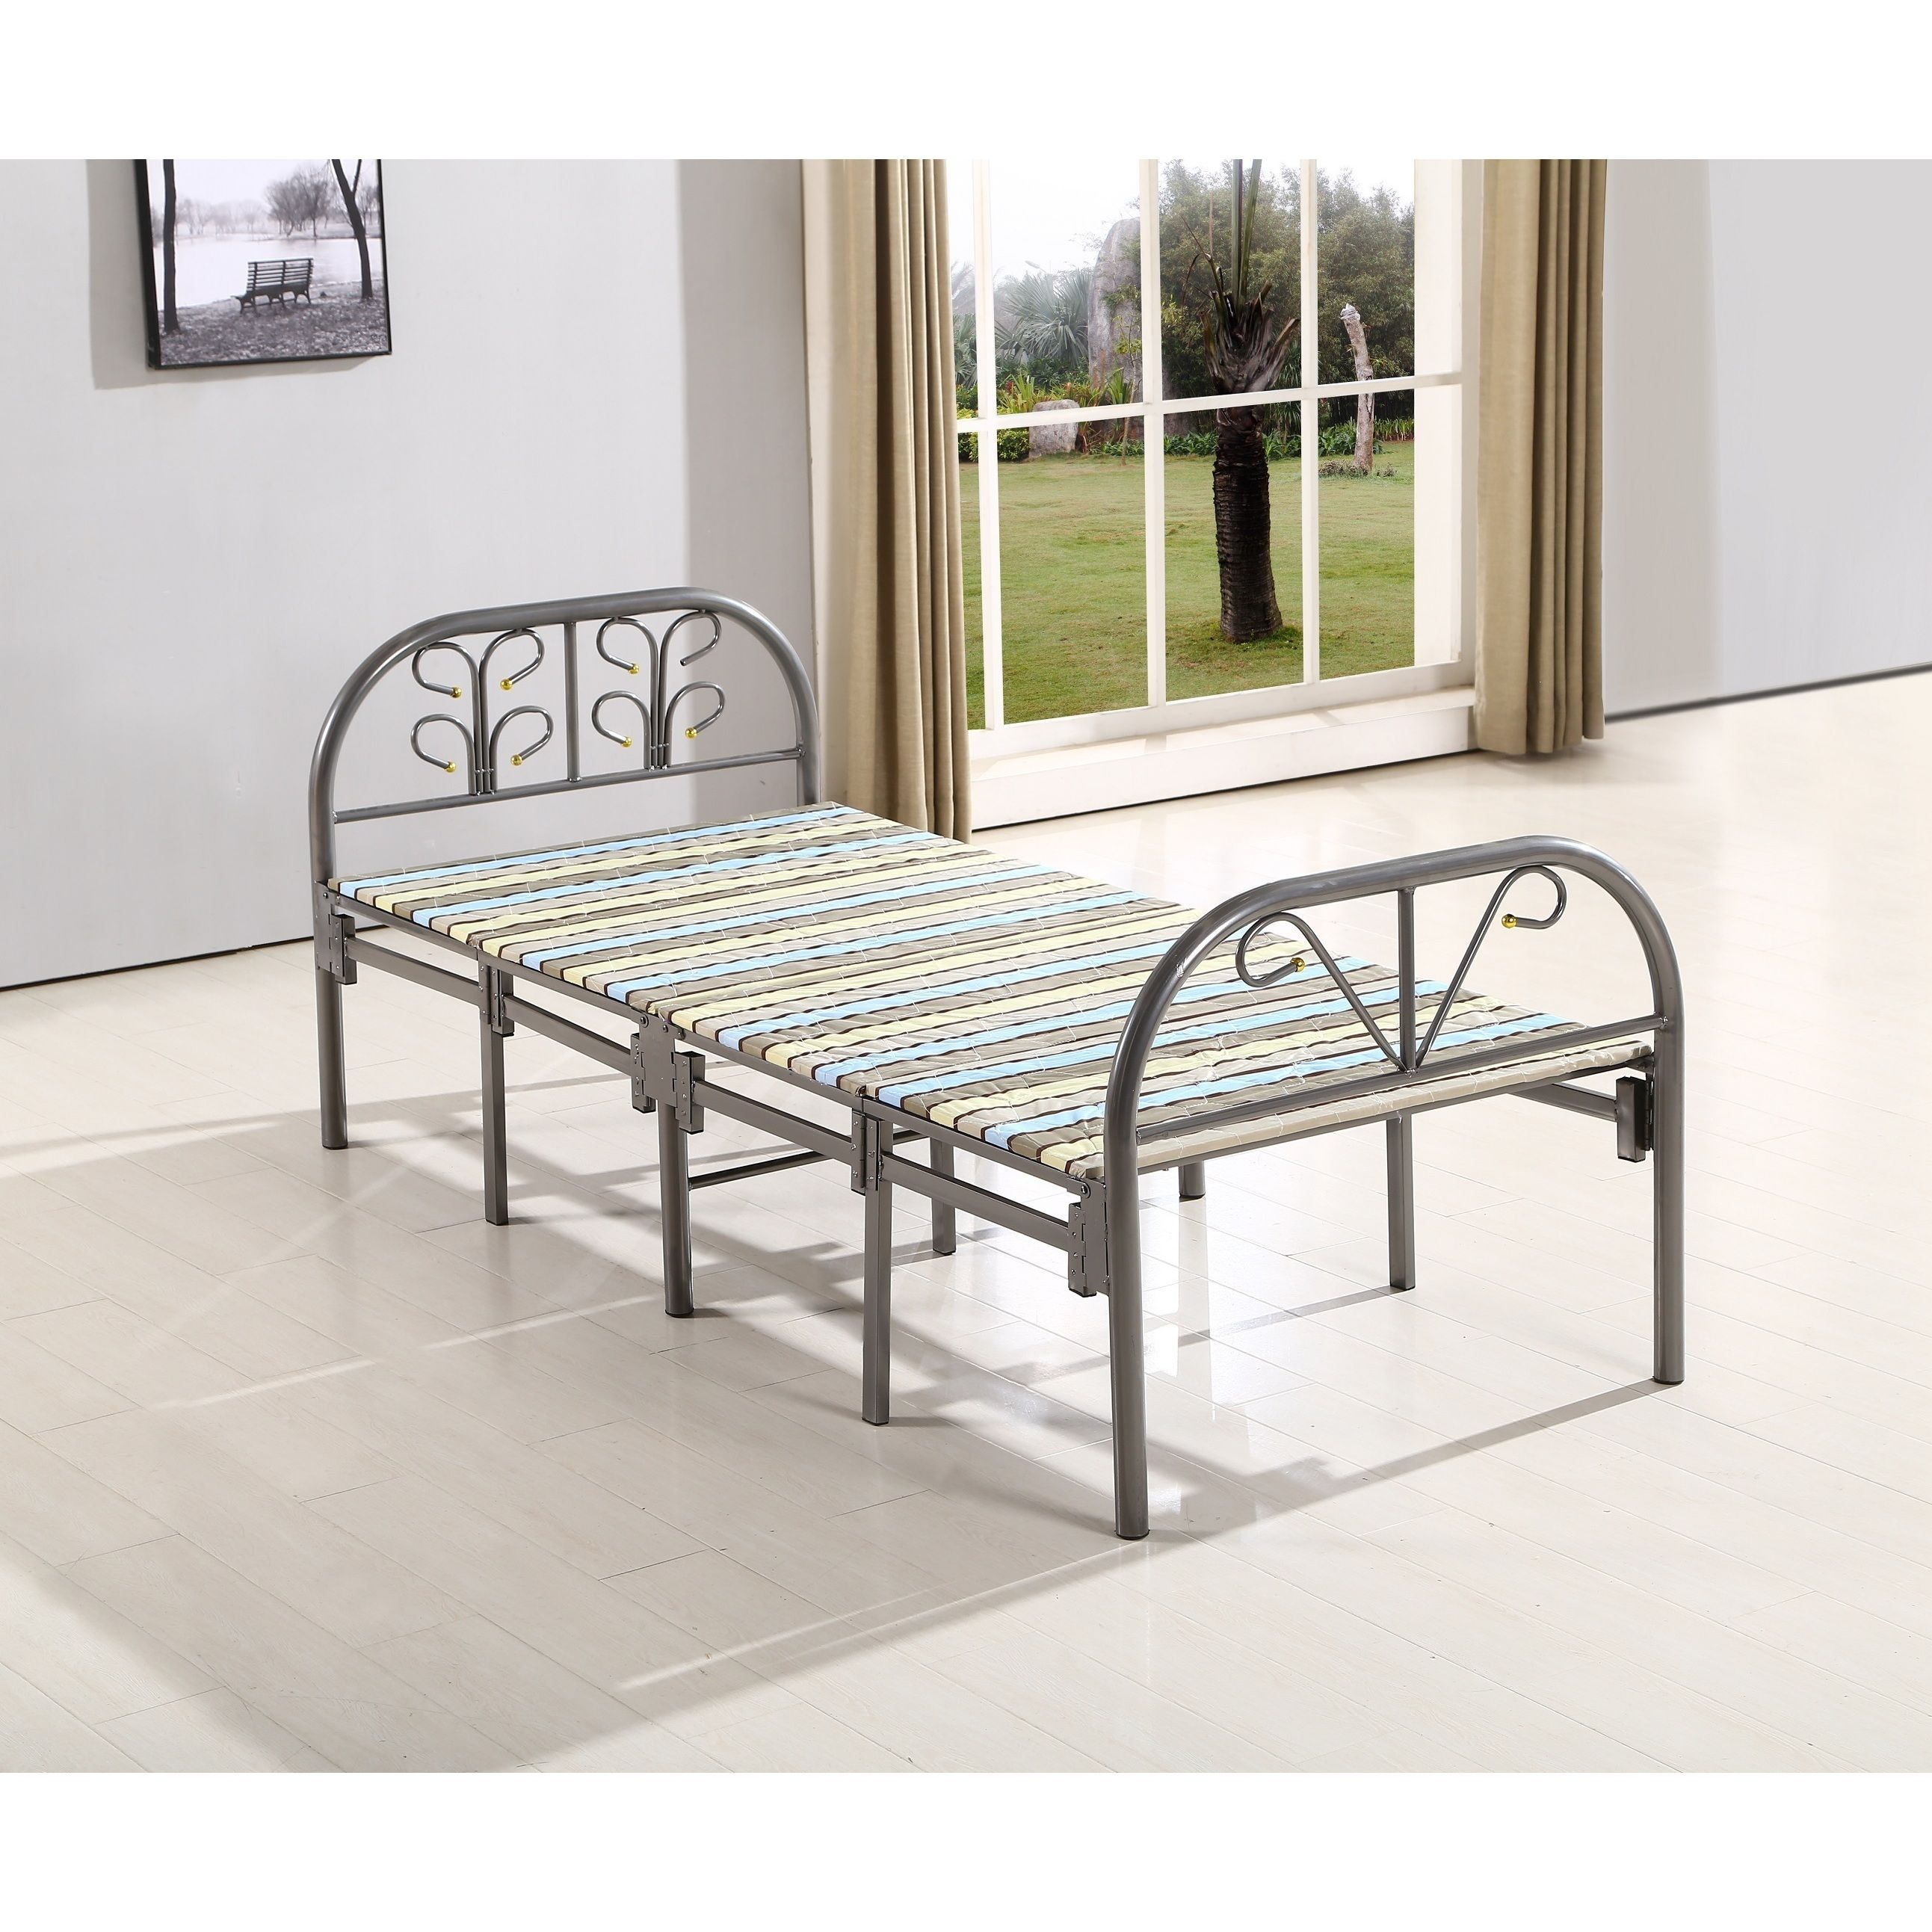 expand with to memory foam folding click guest single be jb mattress jay image supreme bed